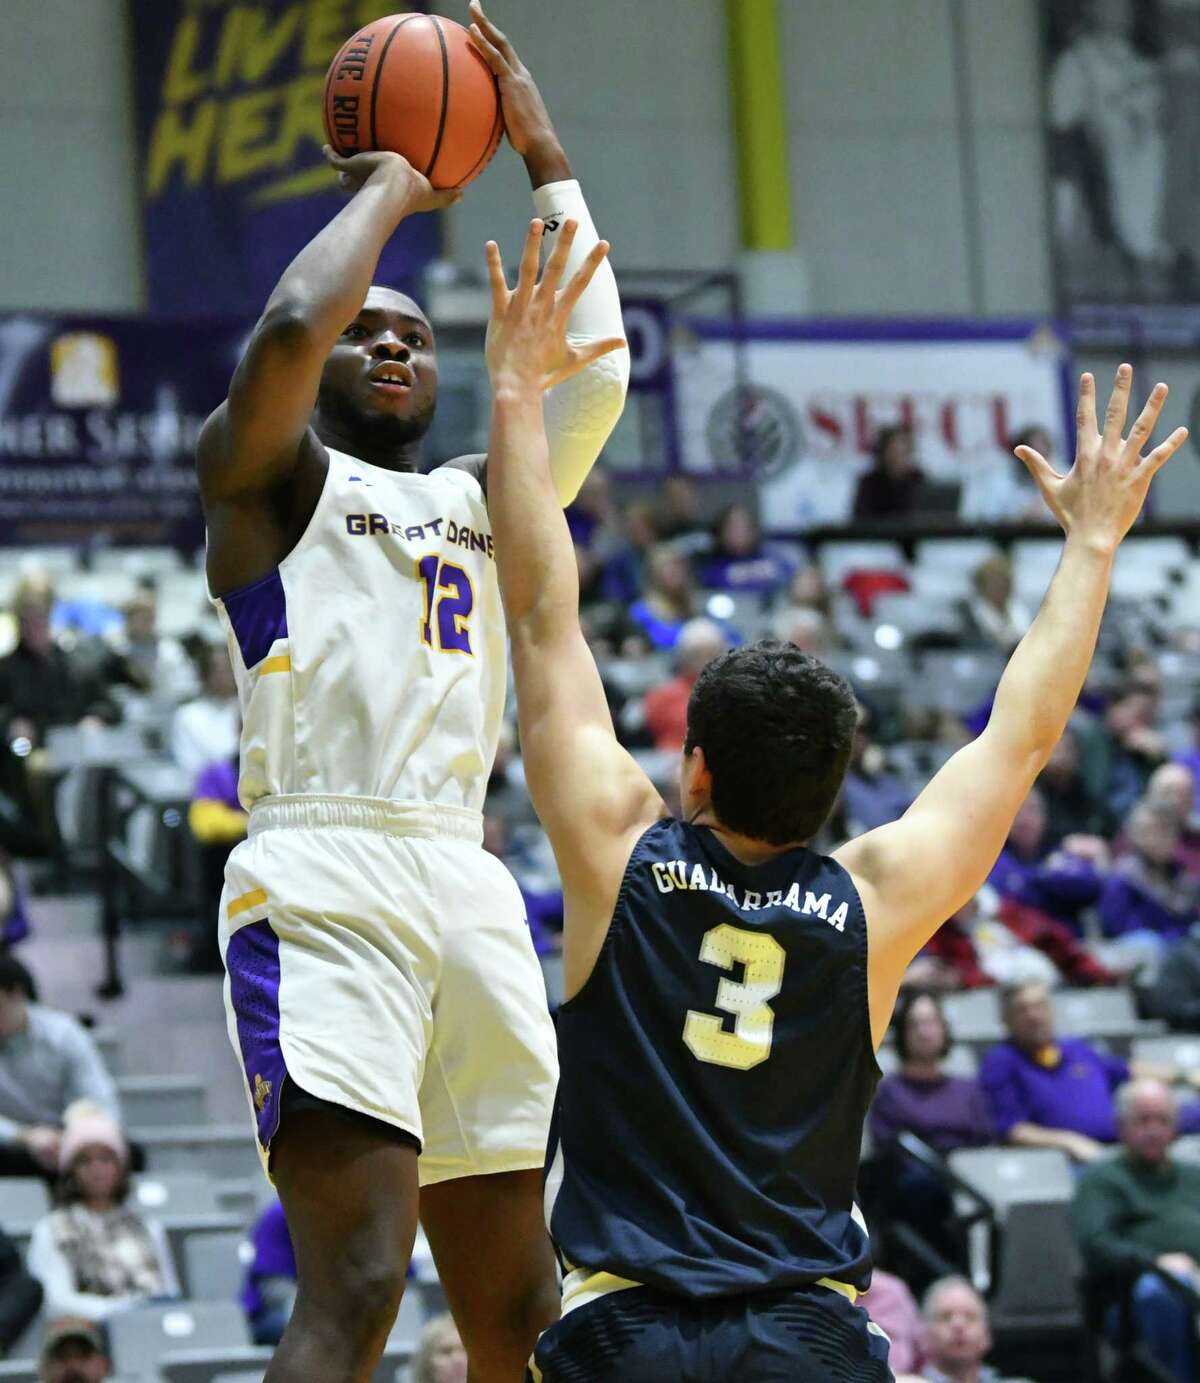 University at Albany's Devonte Campbell goes up for a shot against New Hampshire's Rayshawn Miller during a basketball game at SEFCU Arena on Wednesday, Feb. 27, 2019 in Albany, N.Y. (Lori Van Buren/Times Union)